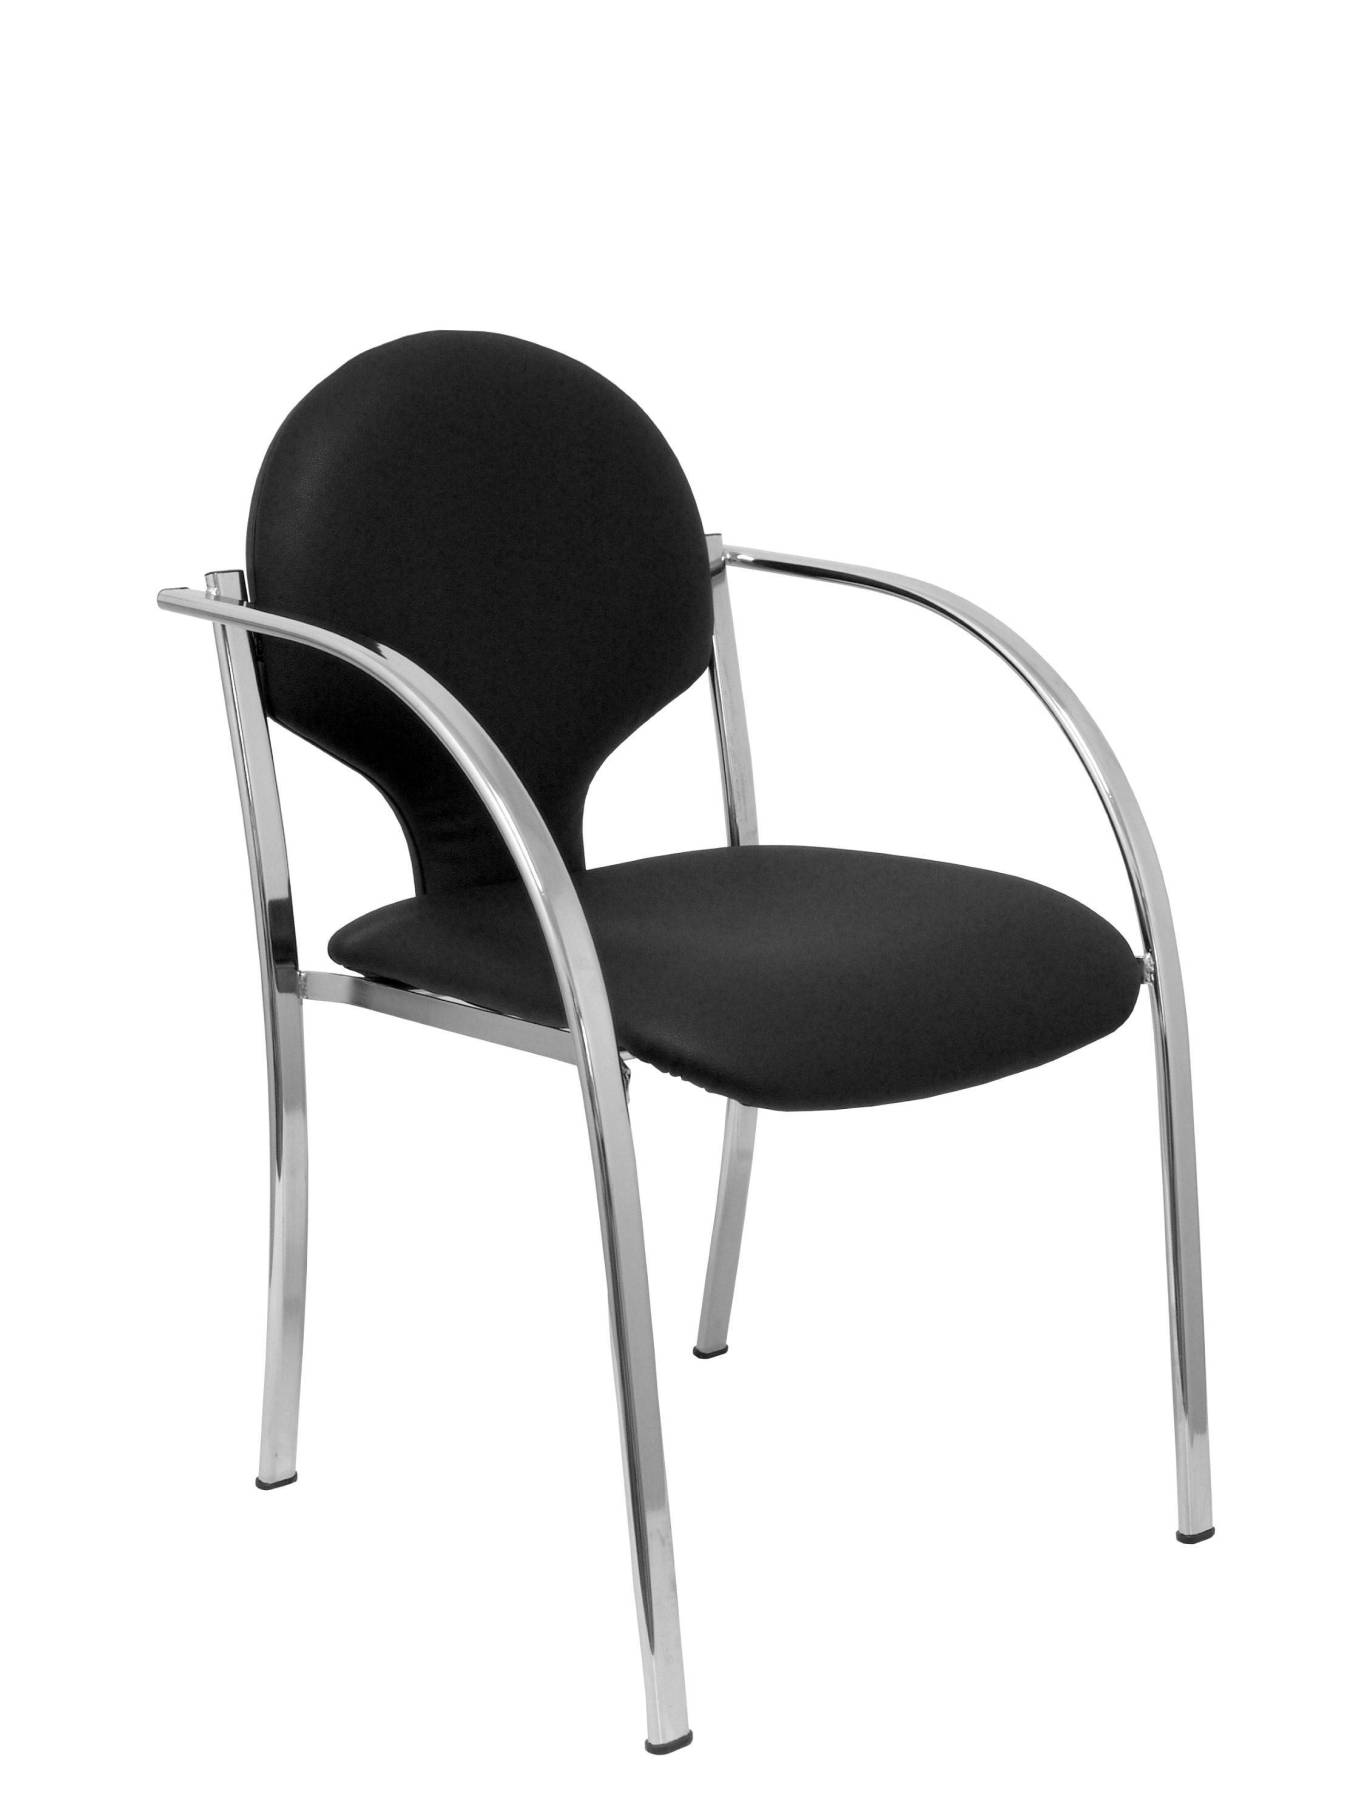 Pack 2 Chairs Confident Ergonomic With Fixed Arms Built-in Stackable And Structure Chrome Seat And Backrest